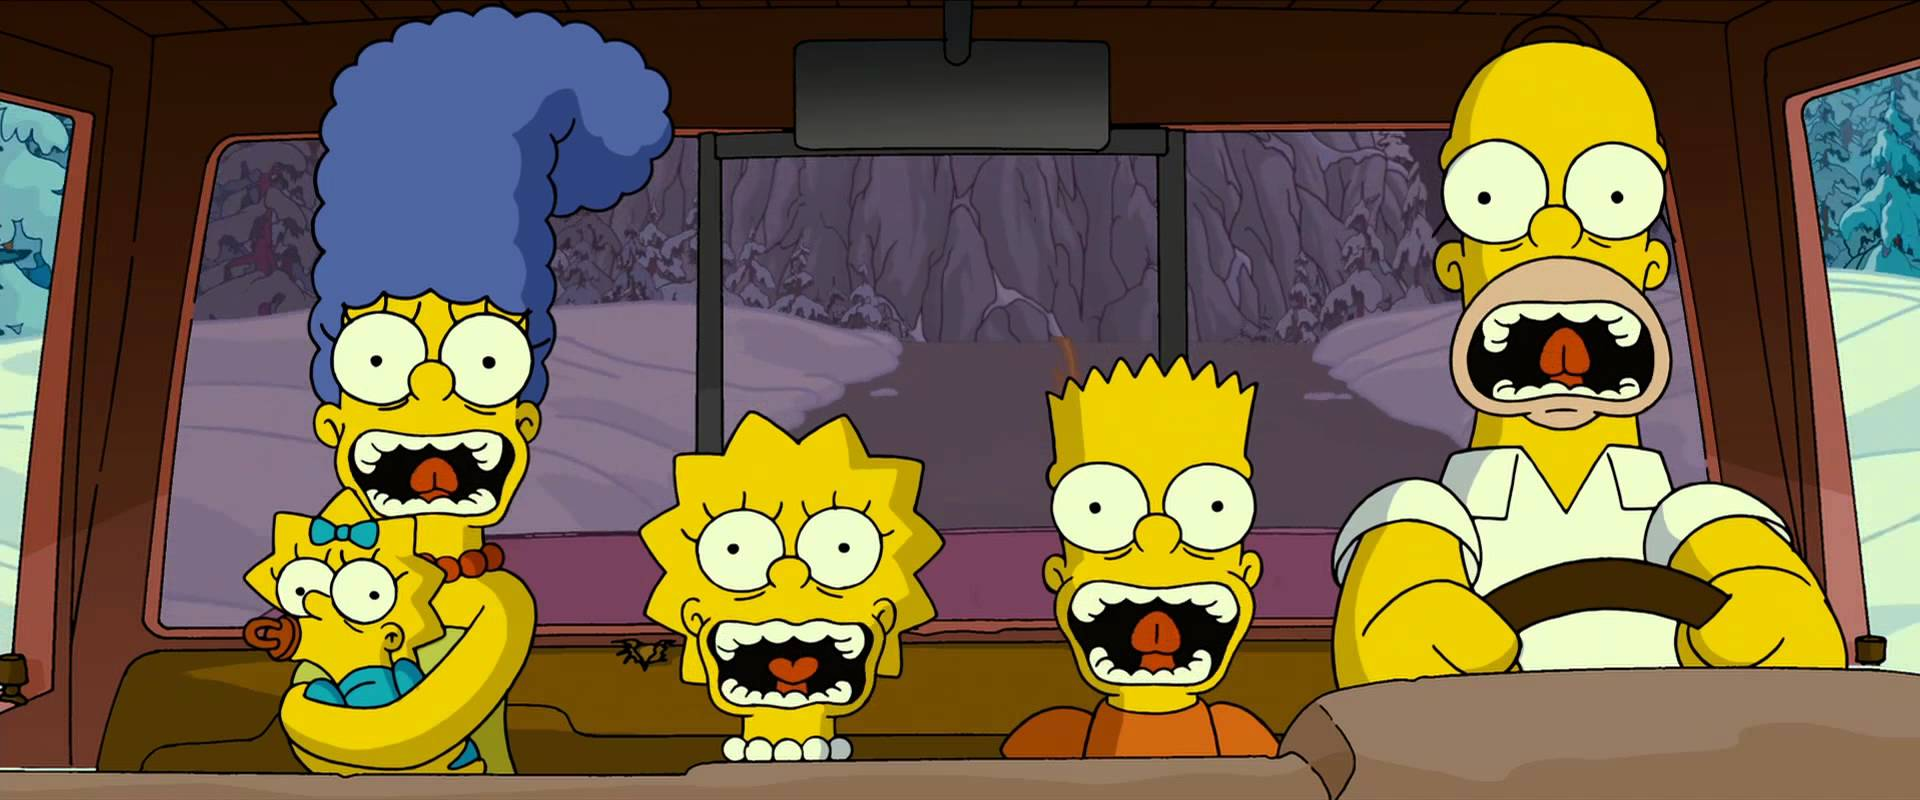 New Information On Second Simpsons Movie Revealed Mxdwn Movies